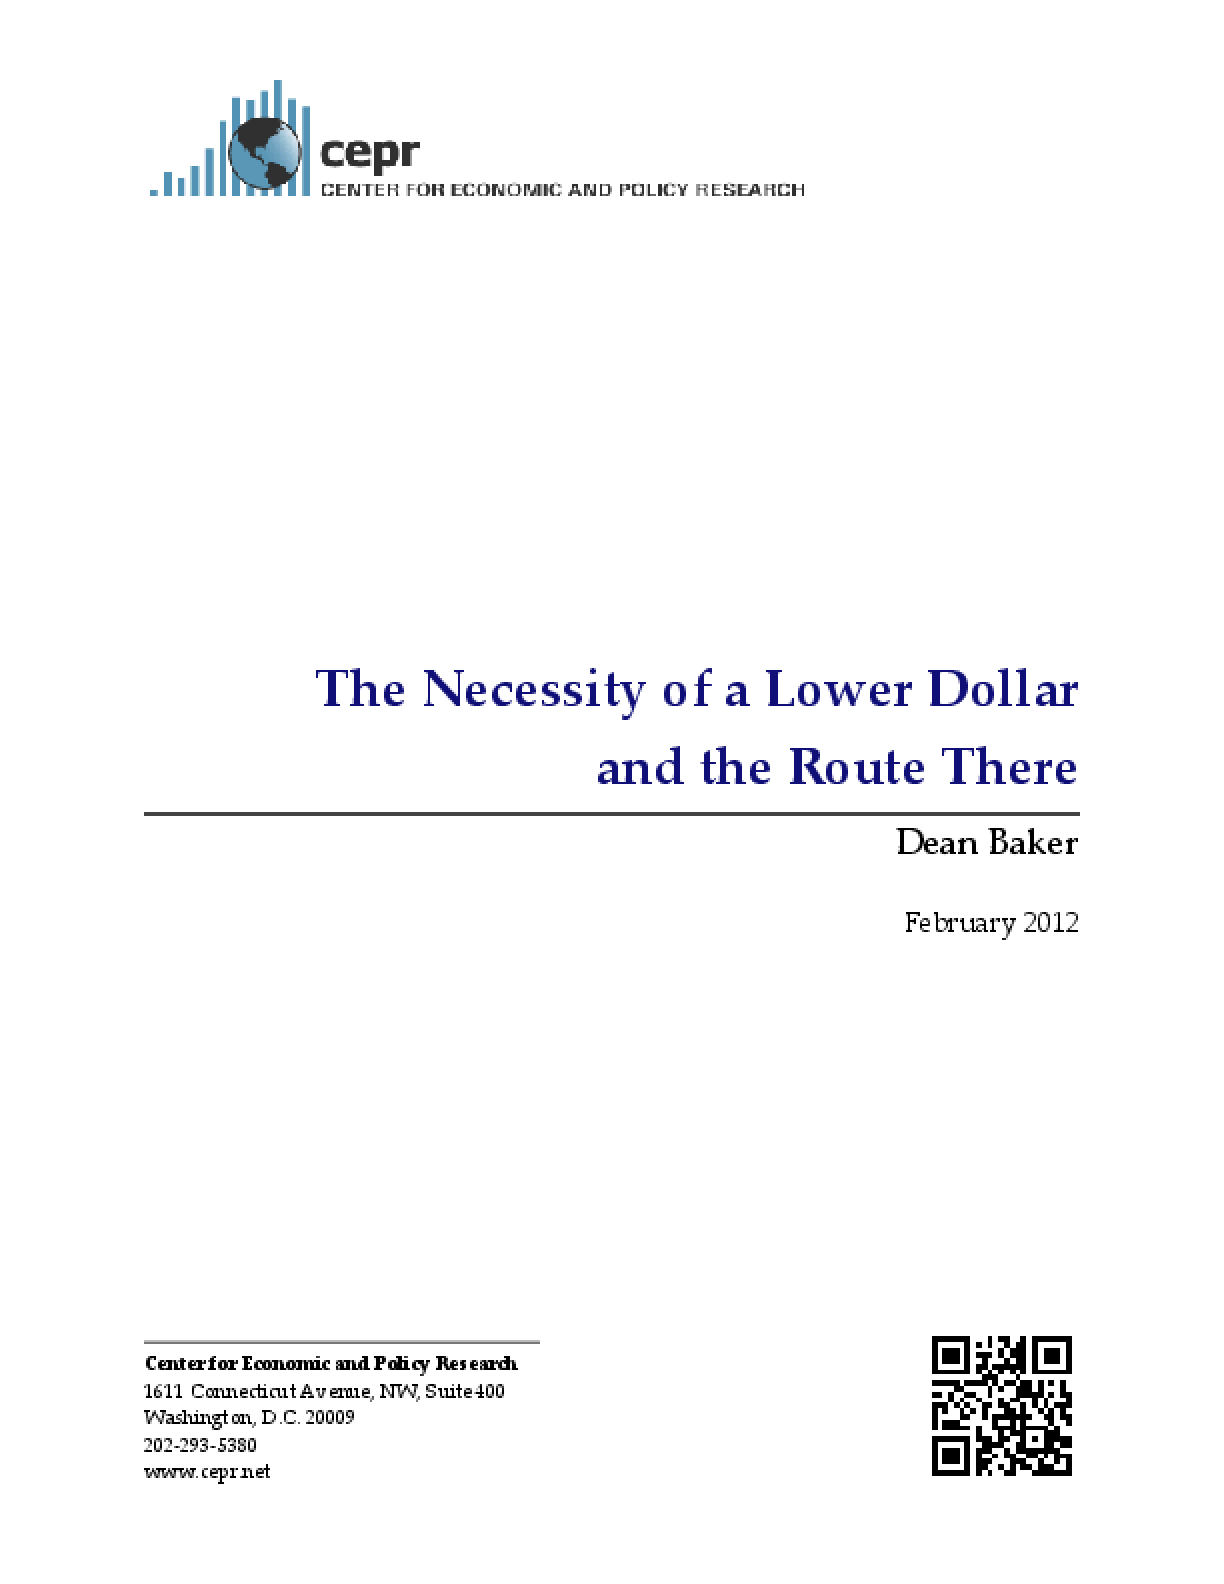 The Necessity of a Lower Dollar and the Route There